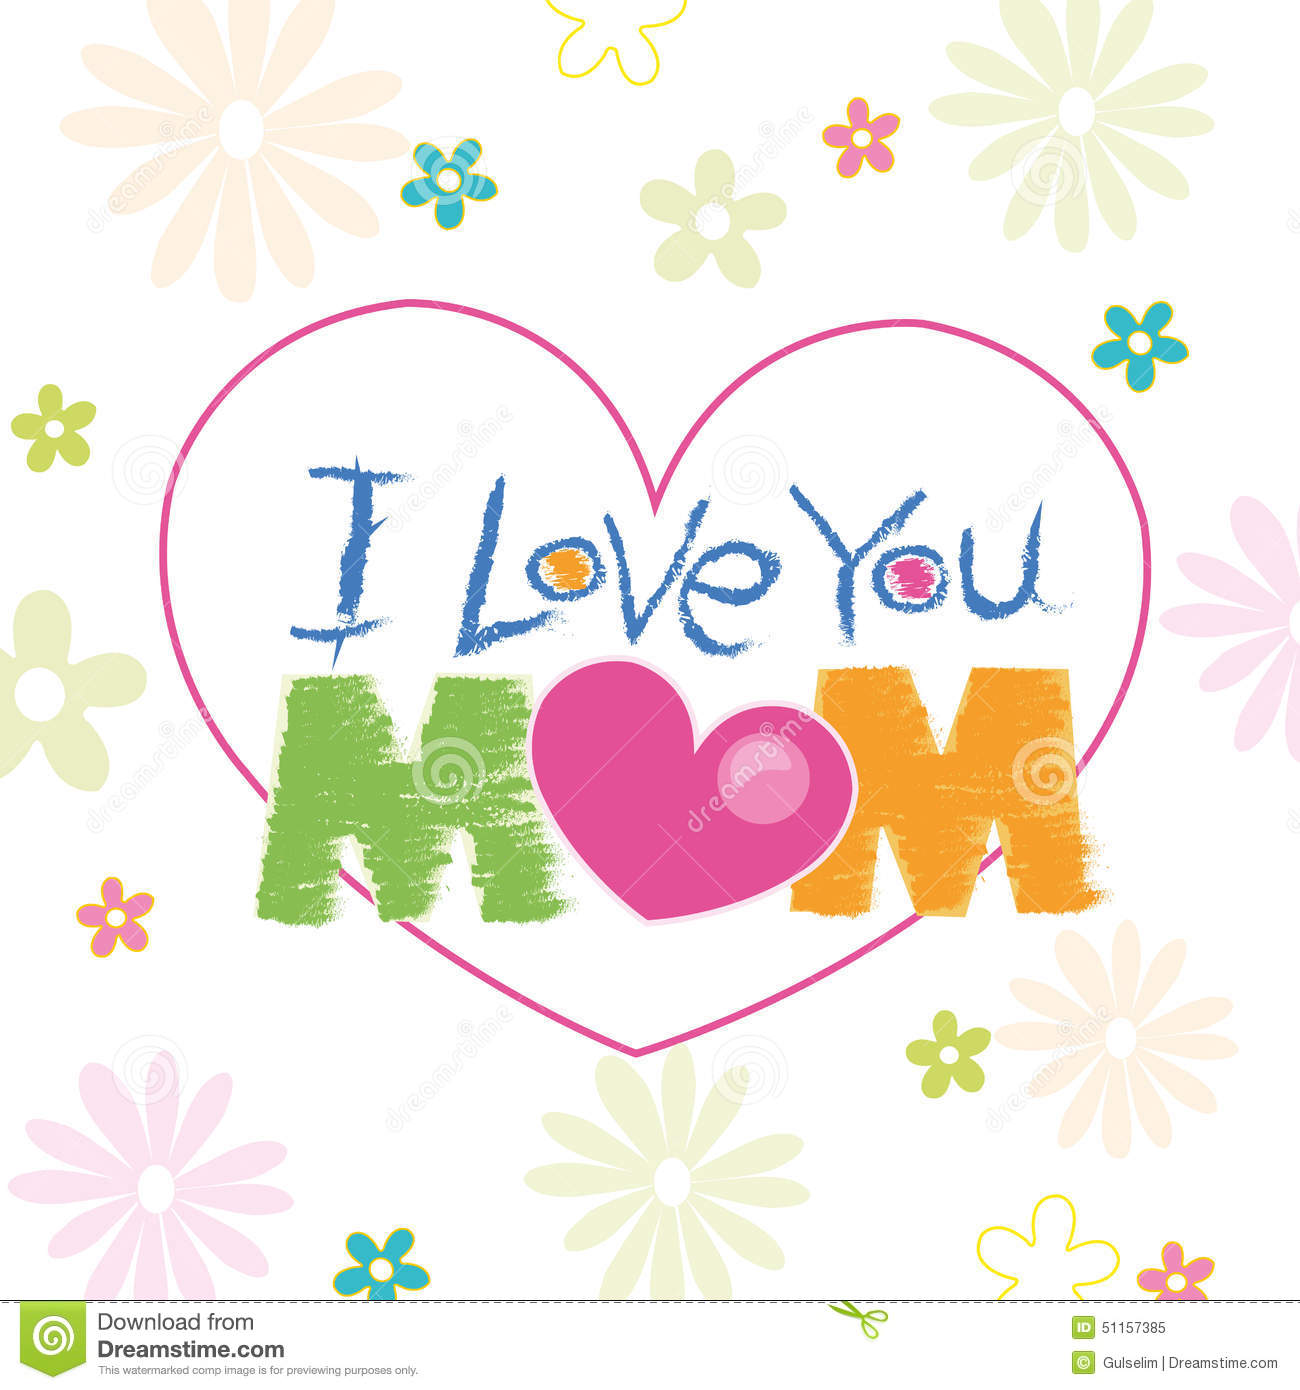 I love u mama clipart image library stock I Love You Mom Doodle With Flowers Greeting Card Stock Vector ... image library stock